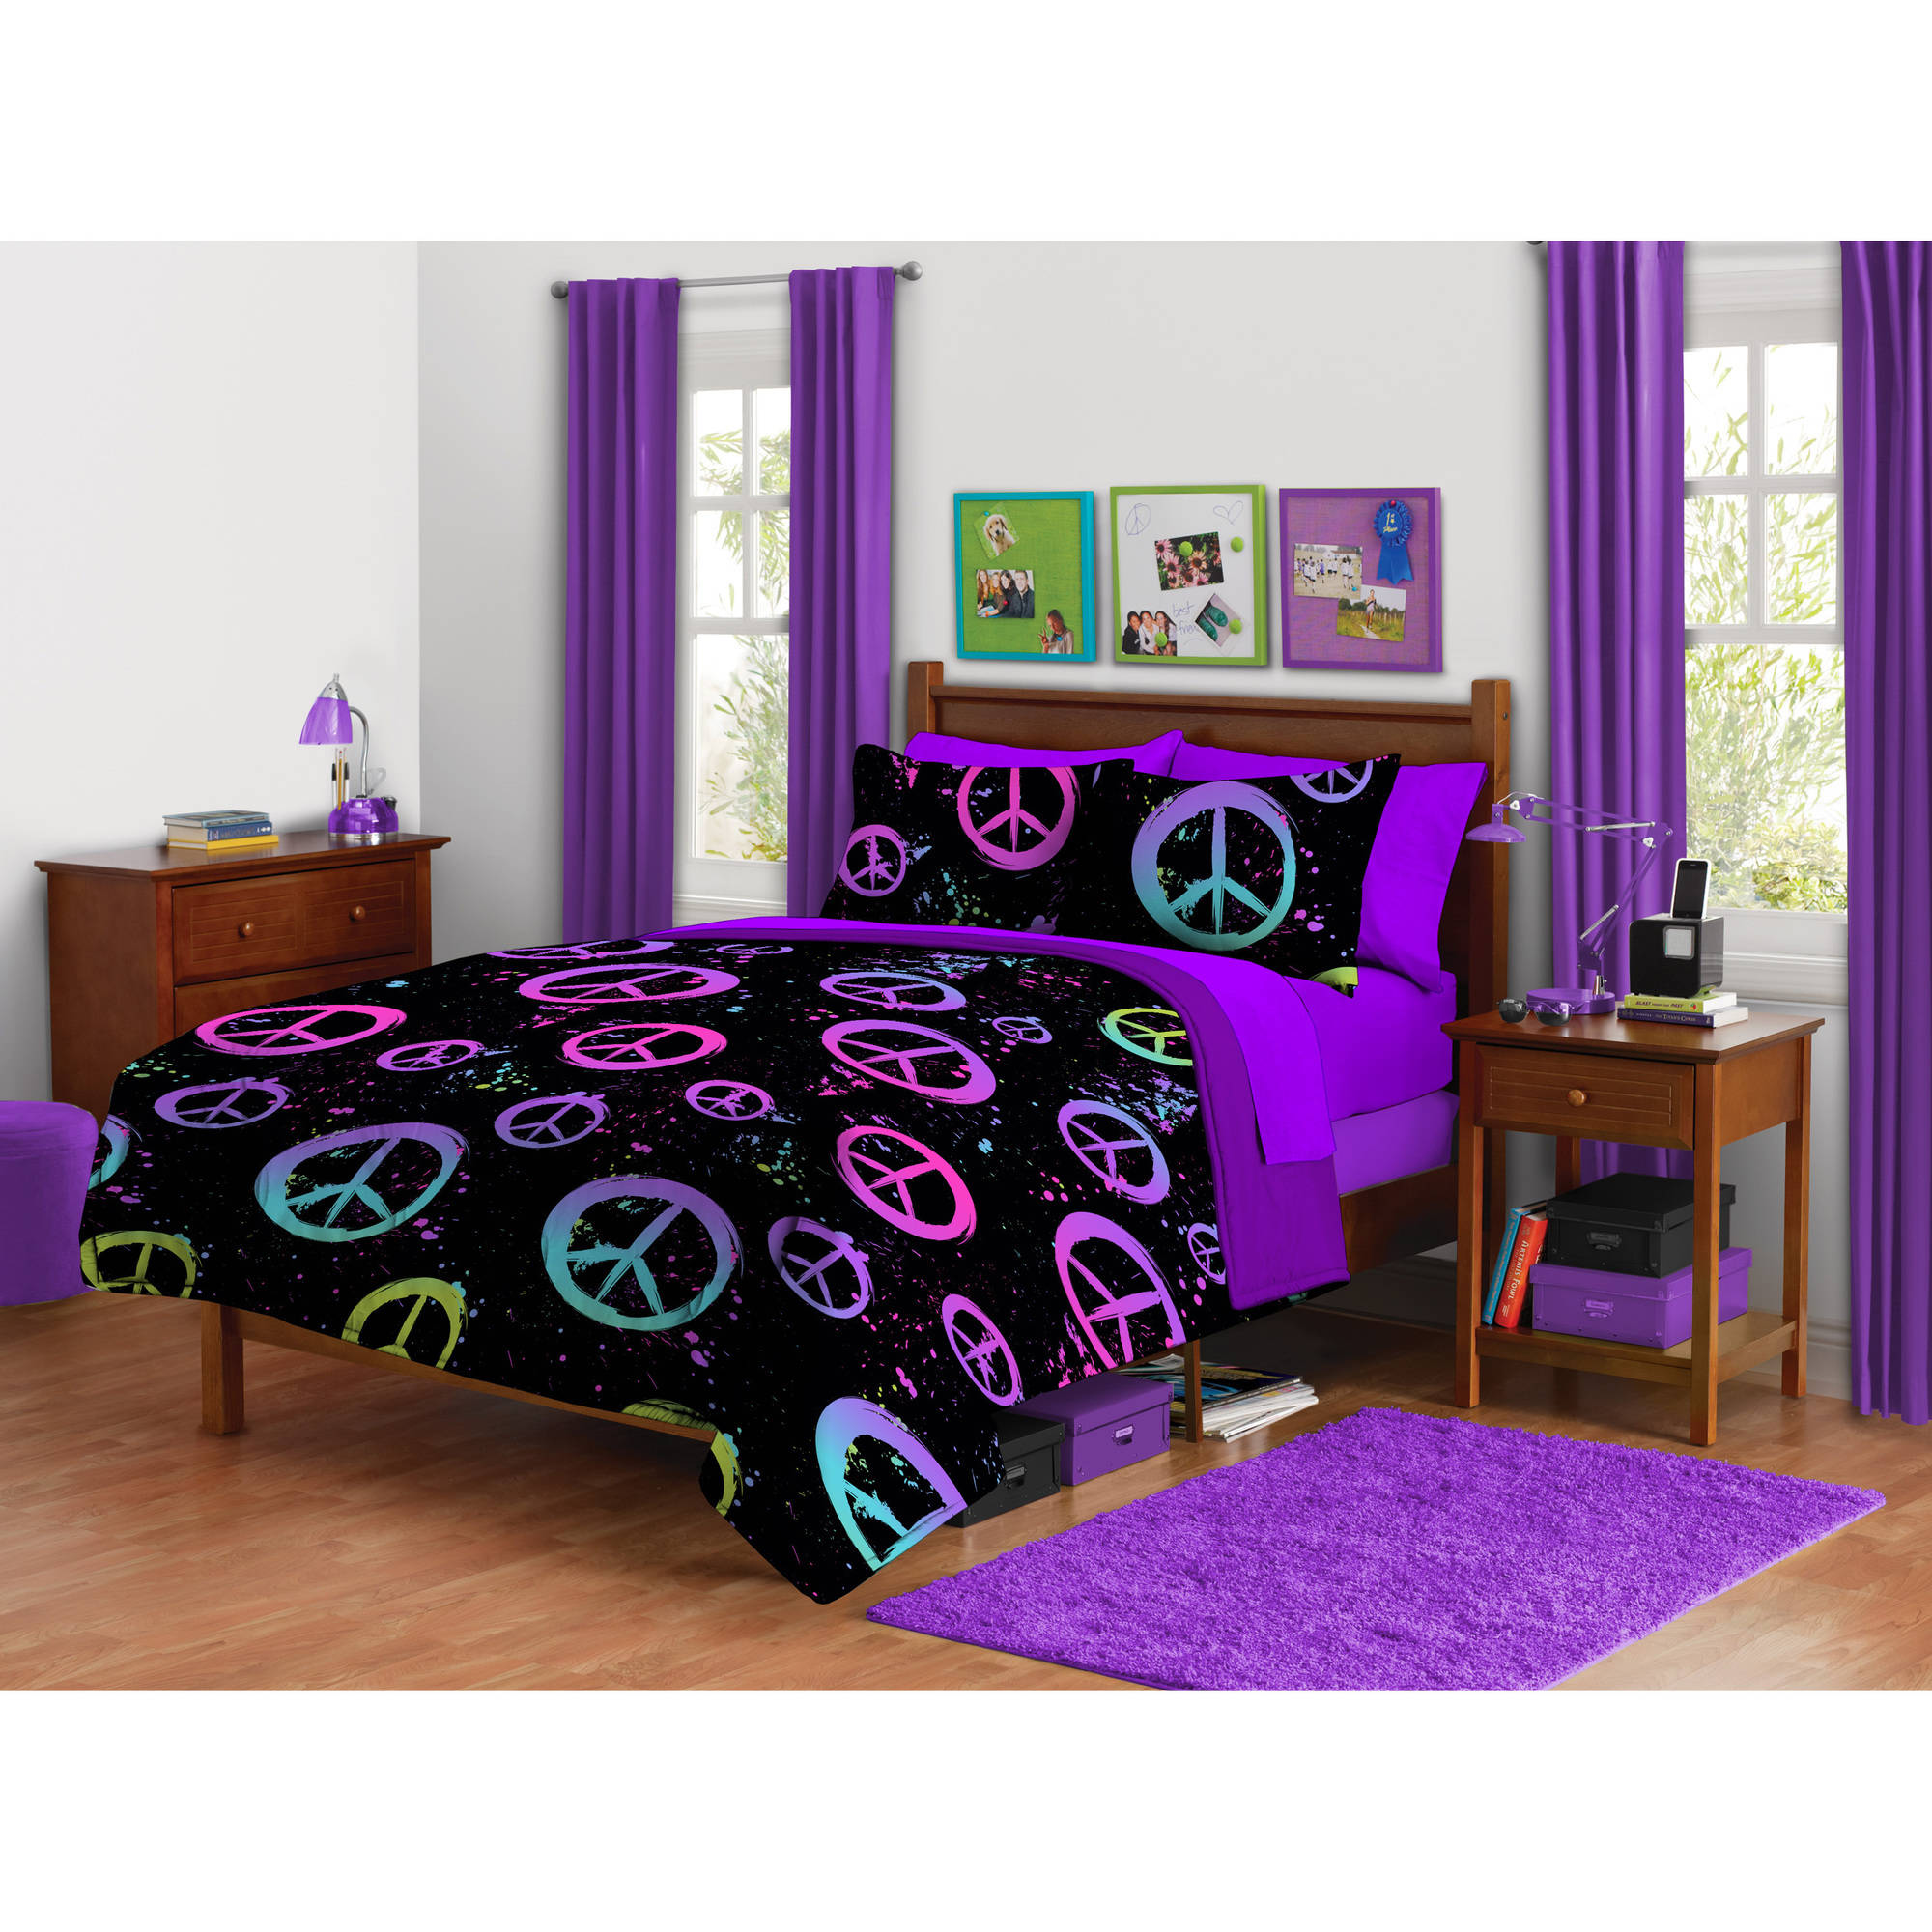 your zone peace sign bedding comforter set